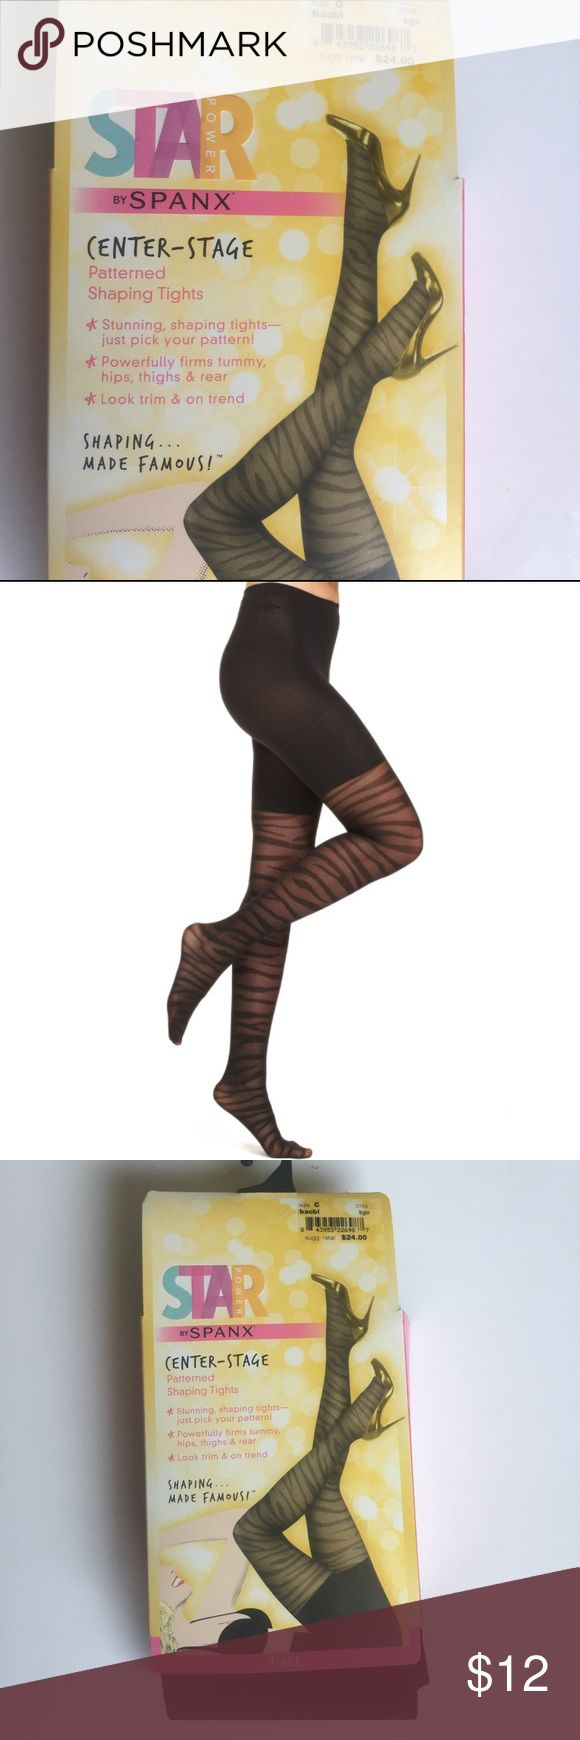 Star Power by Spanx Patterned  Shaping Tights Sz C Star Power by Spanx Patterned  Shaping Tights. Stunning shaping tights. Powerfully firms tummy, hips, thighs, and rear. Look trim and on trend! ❤️ Size C SPANX Accessories Hosiery & Socks